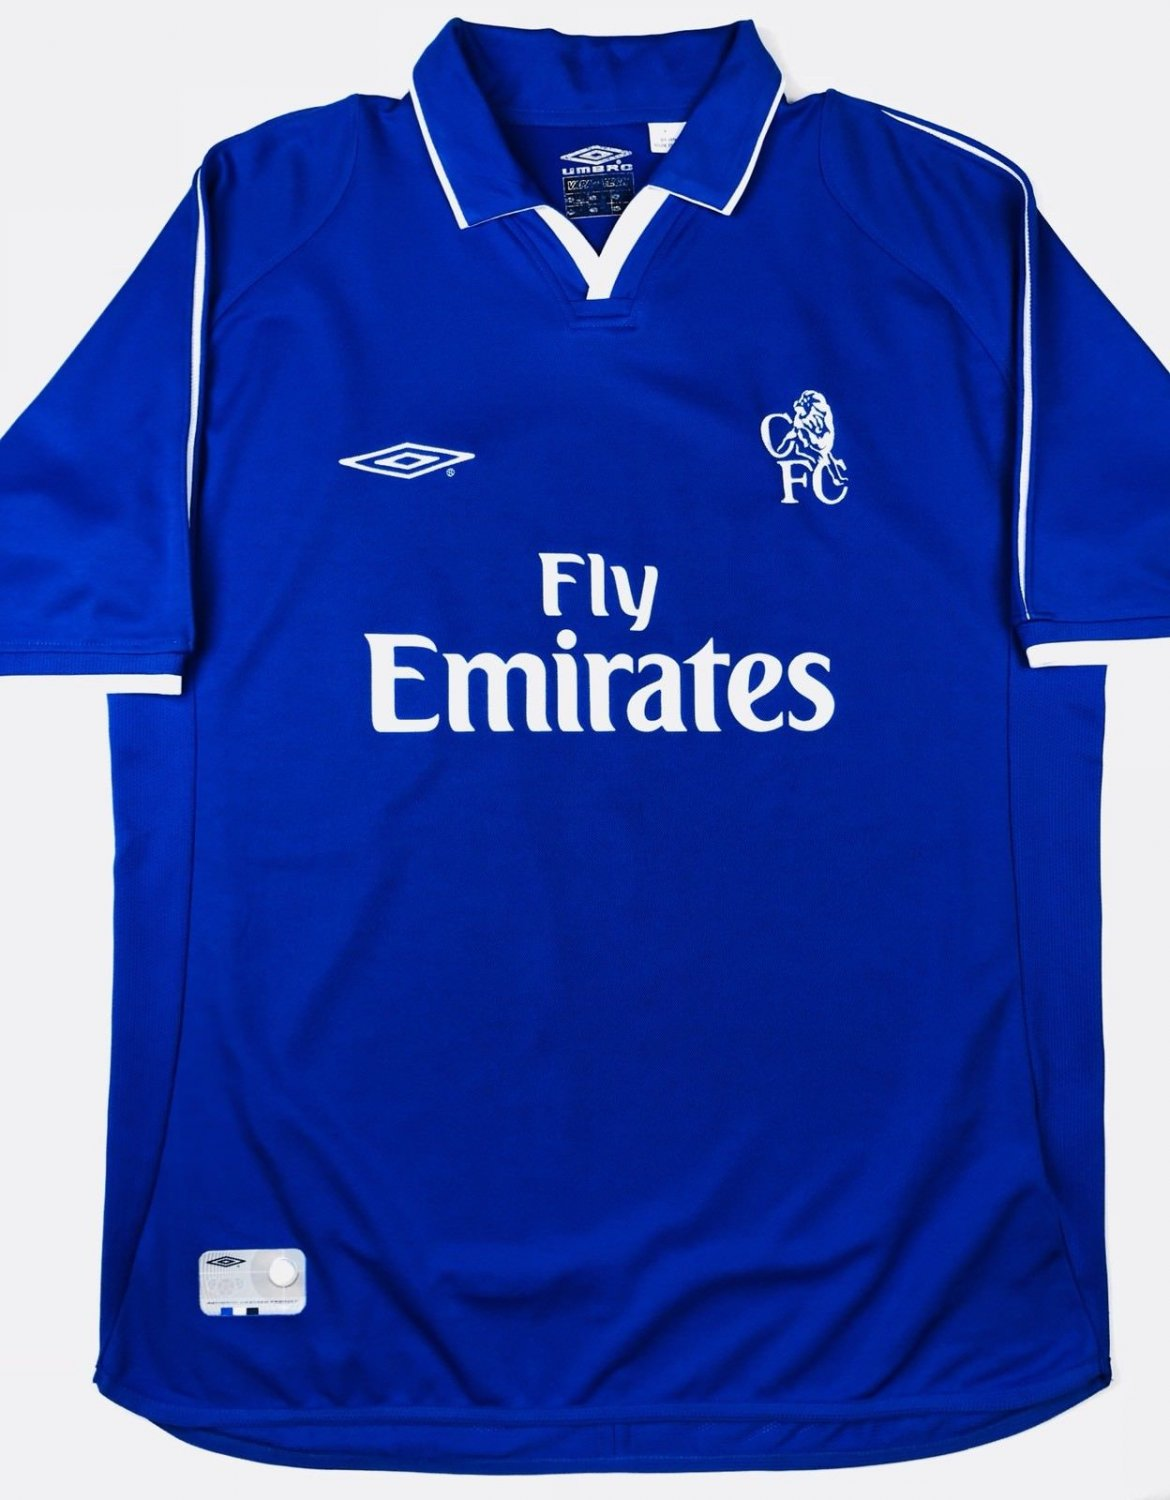 Chelsea Home football shirt 2001 - 2003. Sponsored by Emirates